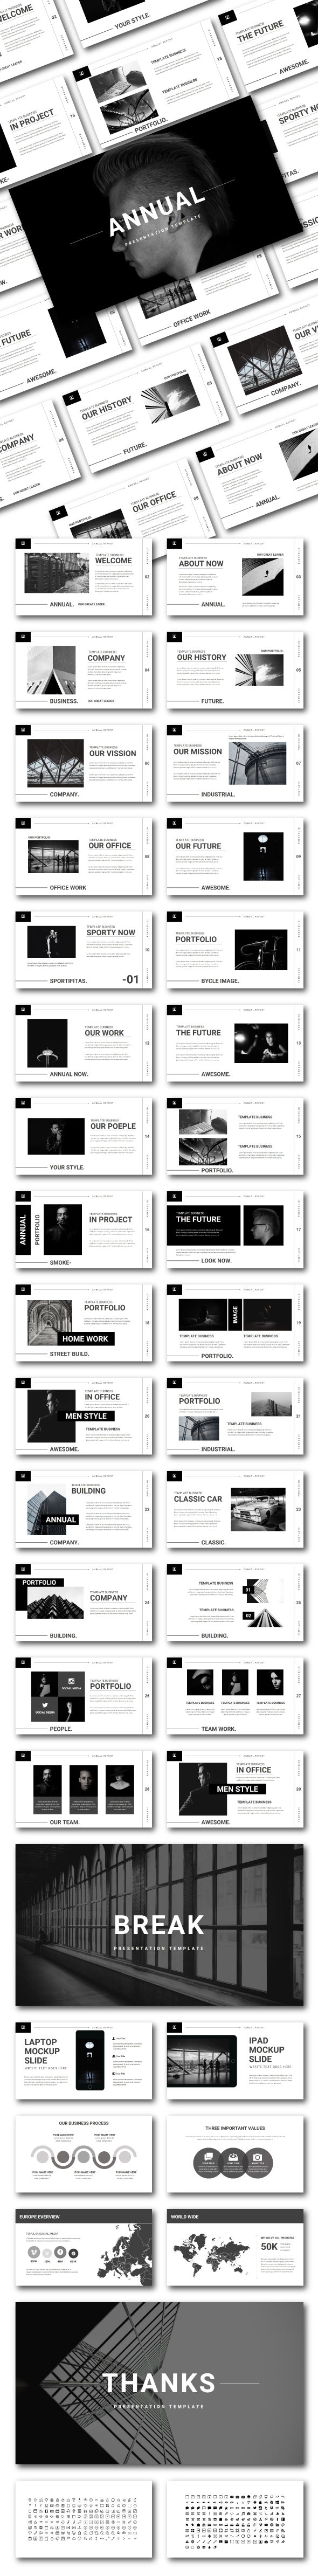 Annual Power Point (PPT & PPTX) - Creative PowerPoint Templates